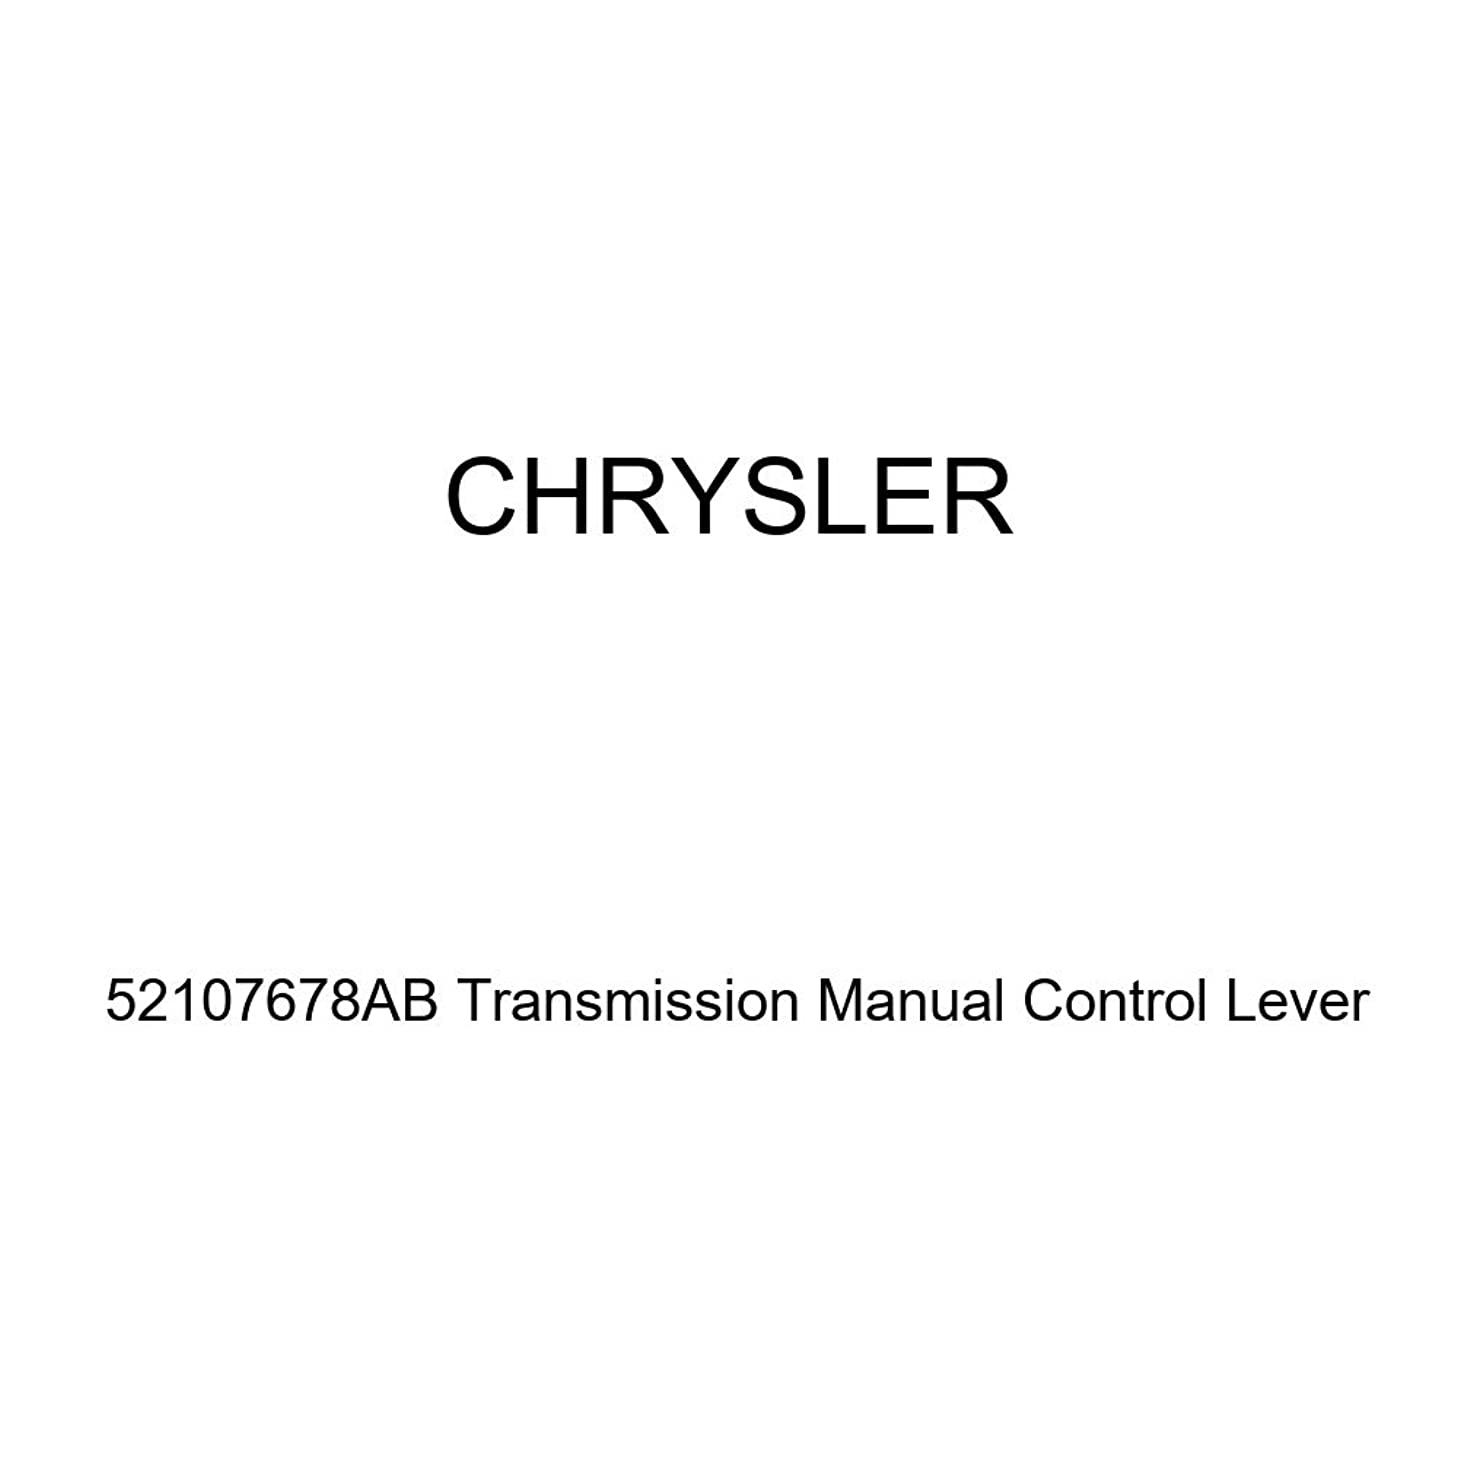 Genuine Chrysler 52107678AB Transmission Manual Control Lever